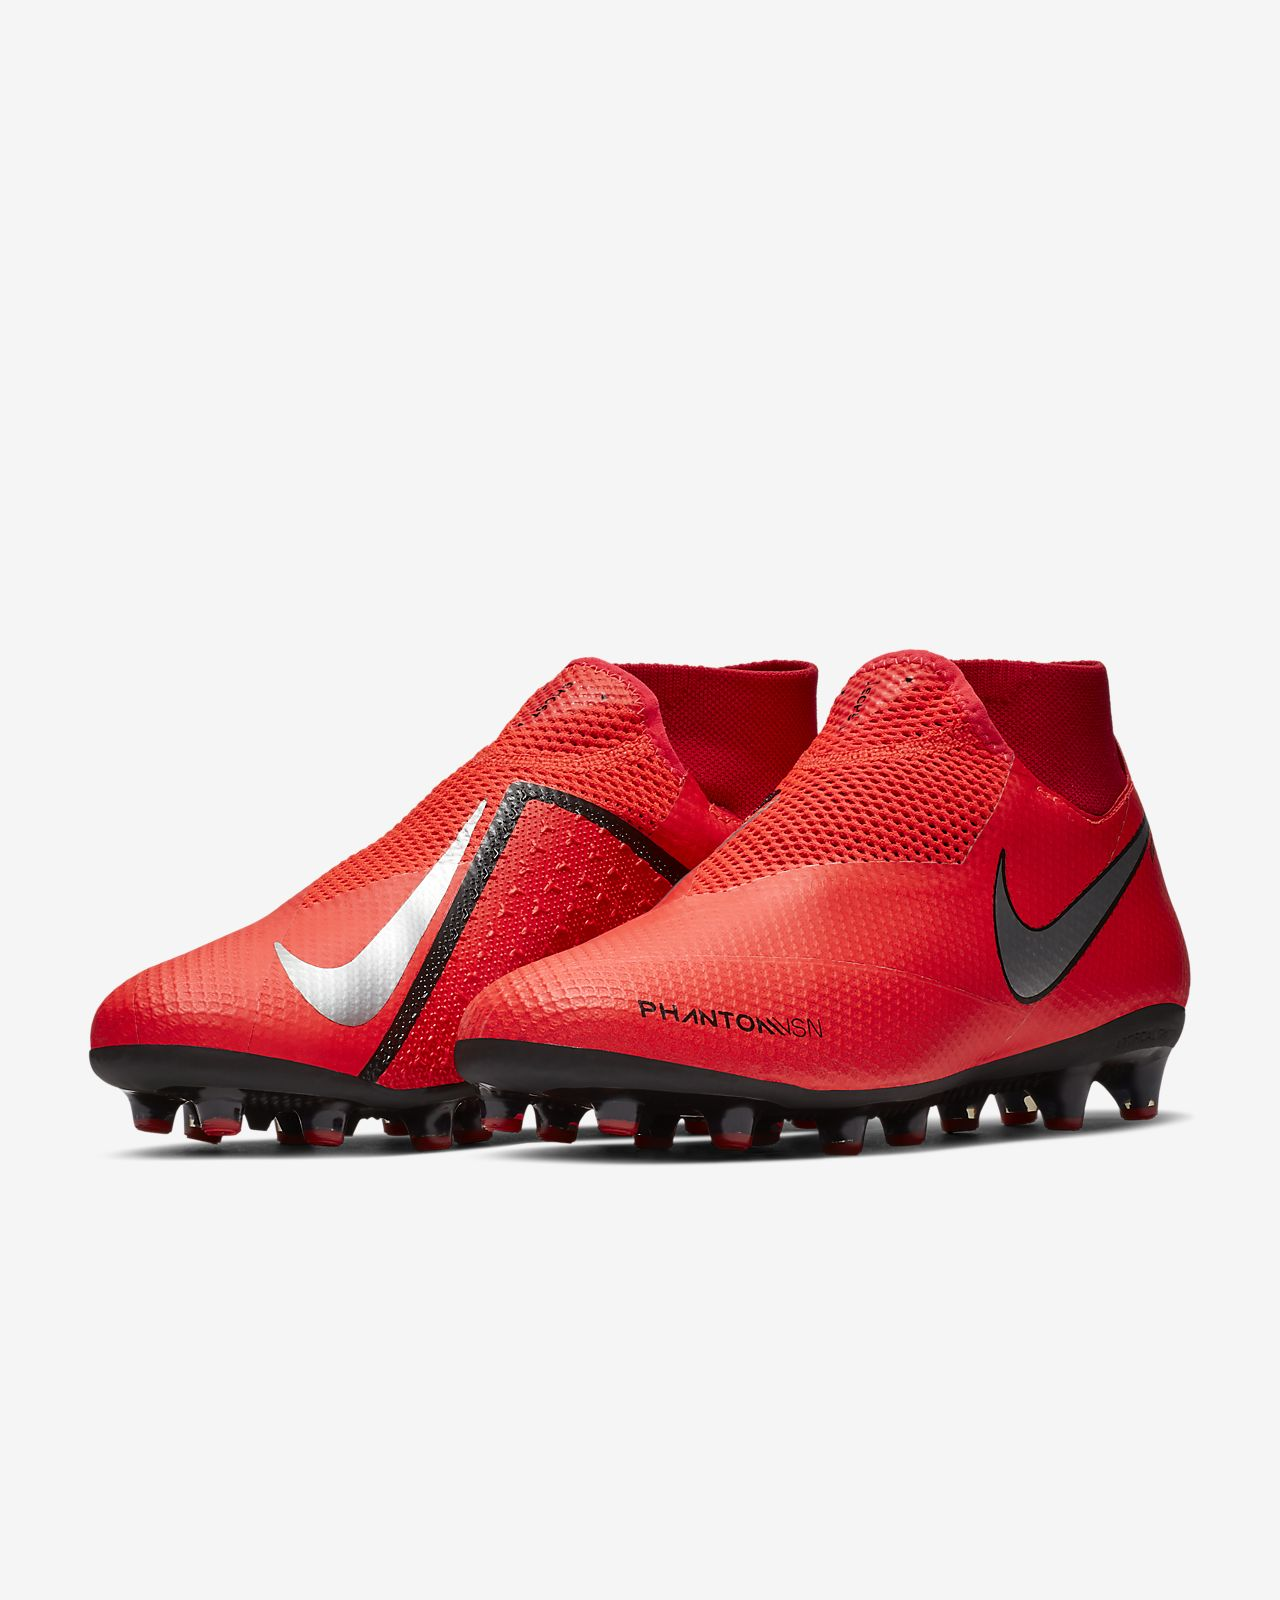 503de01f957 ... Nike Phantom Vision Pro Dynamic Fit AG-PRO Artificial-Grass Football  Boot